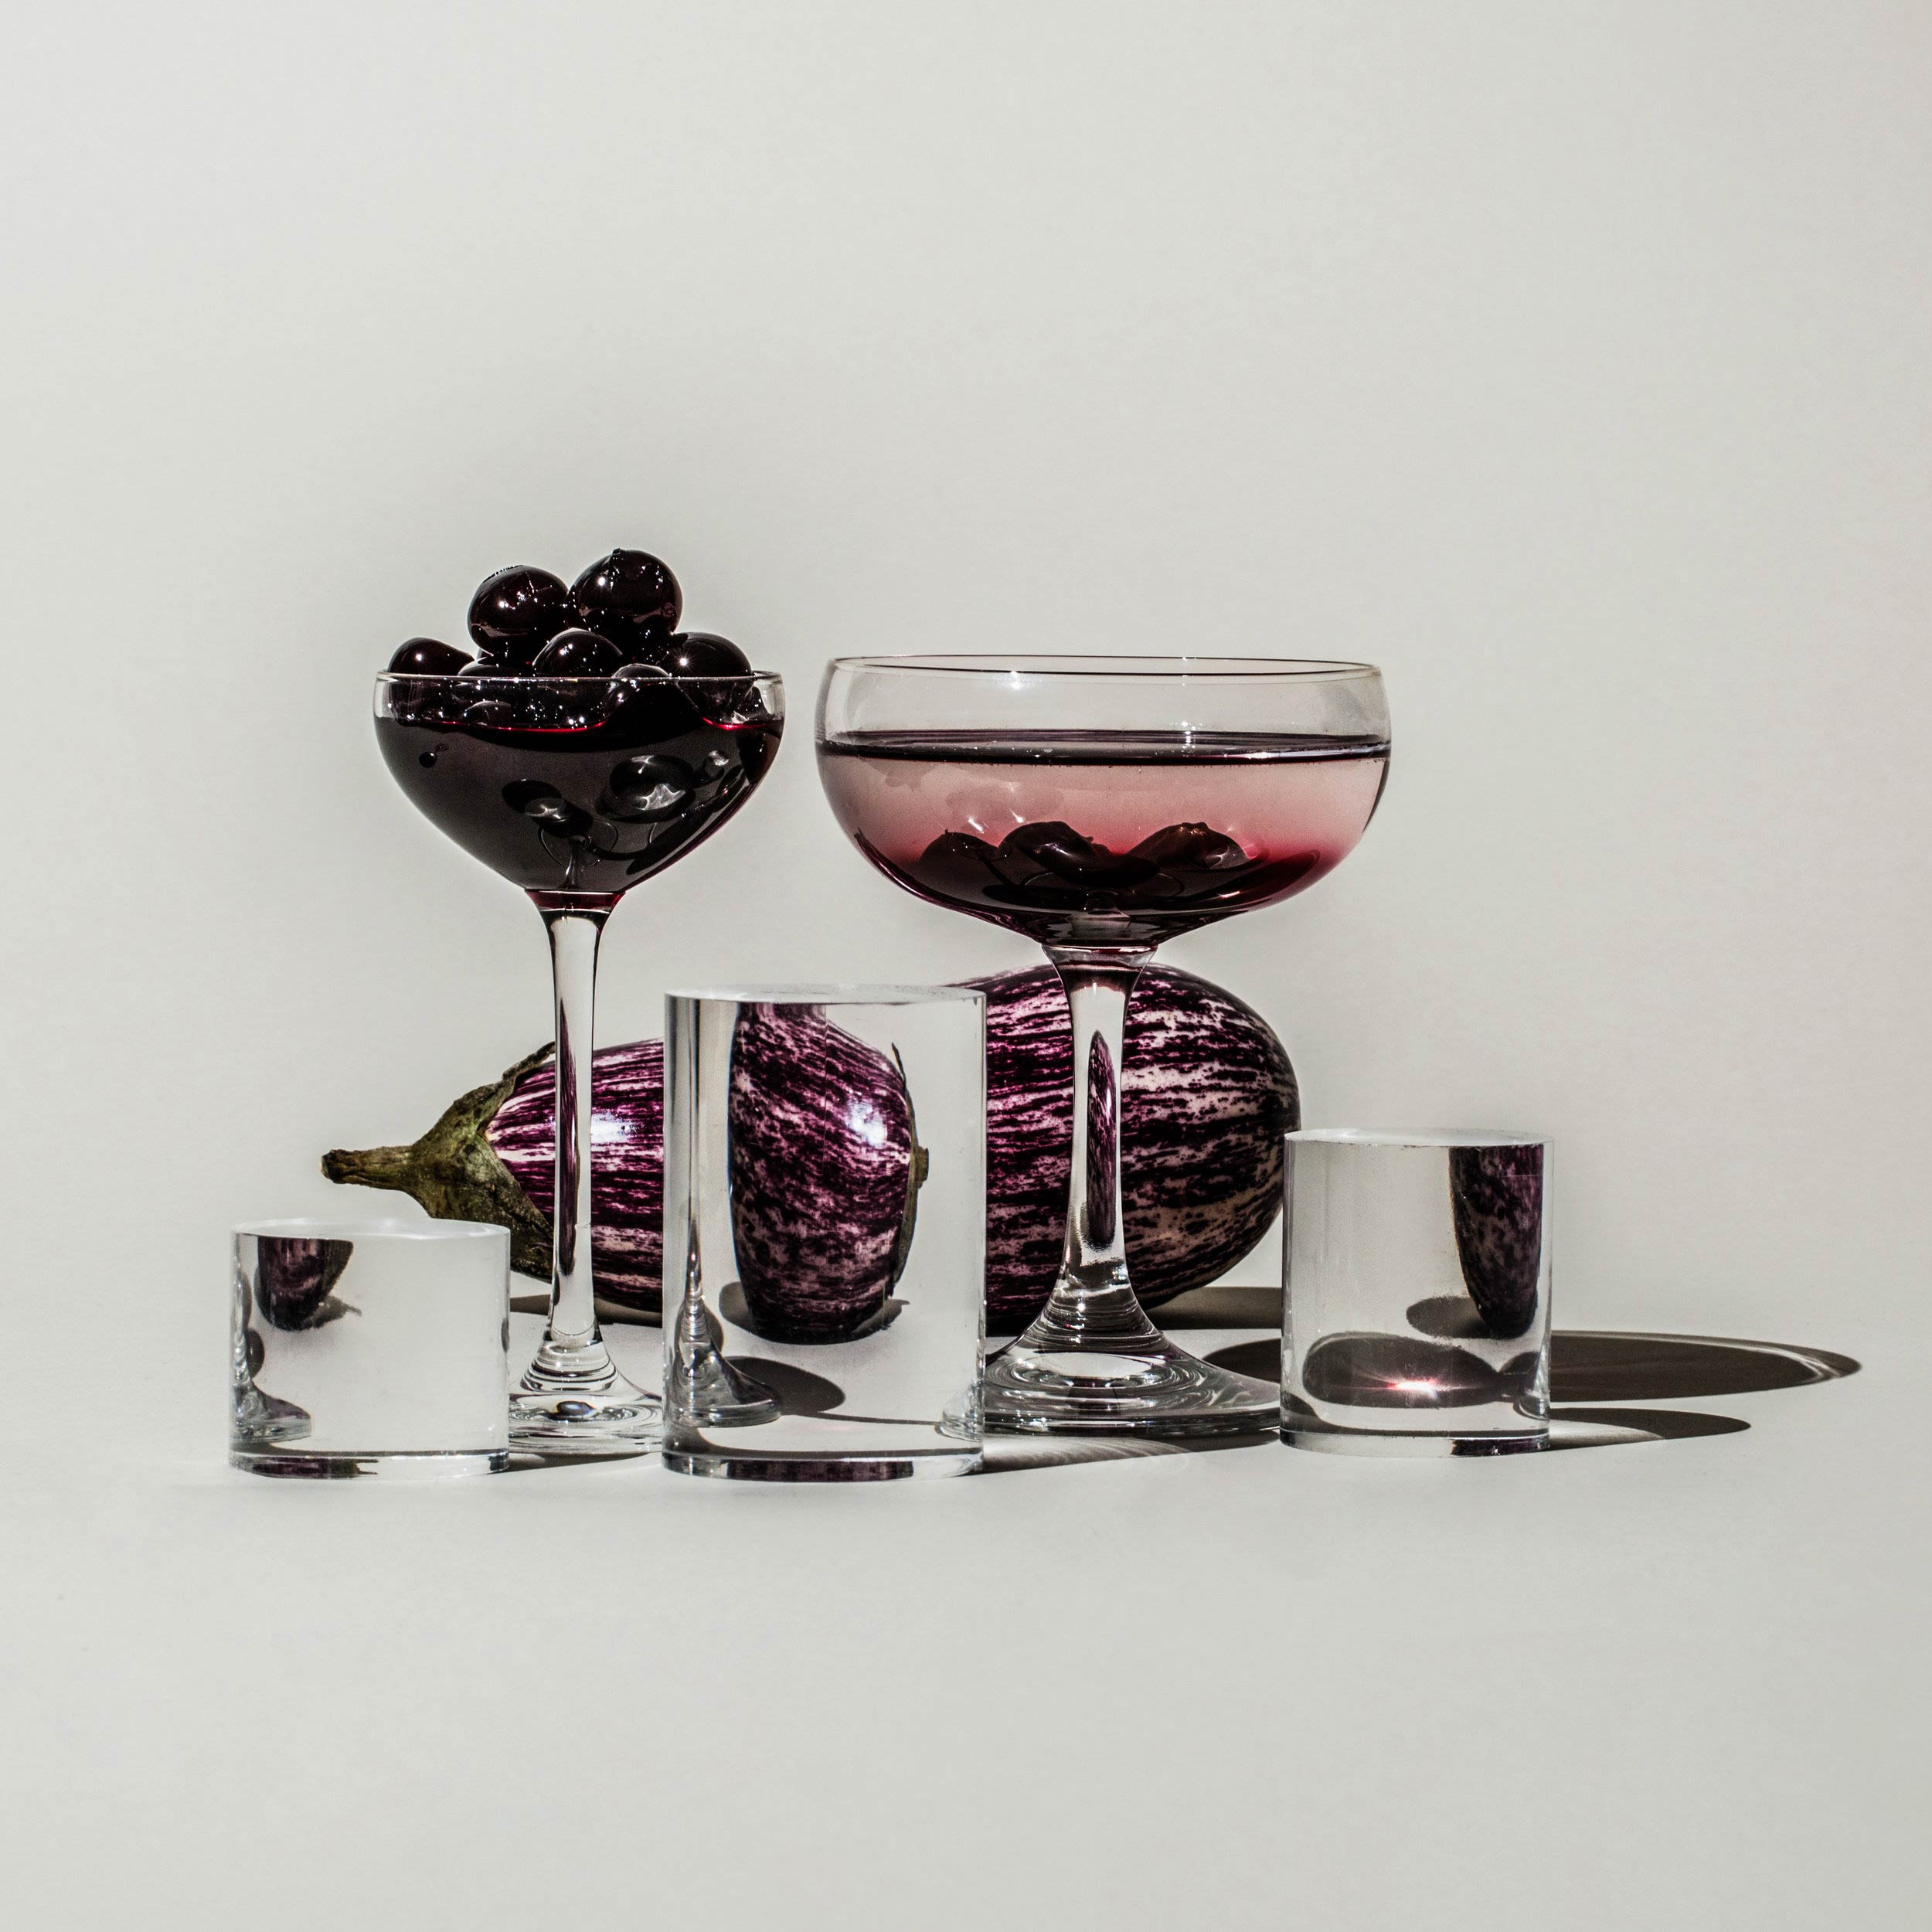 distorded-susan-sakoff-still-life-photography-8